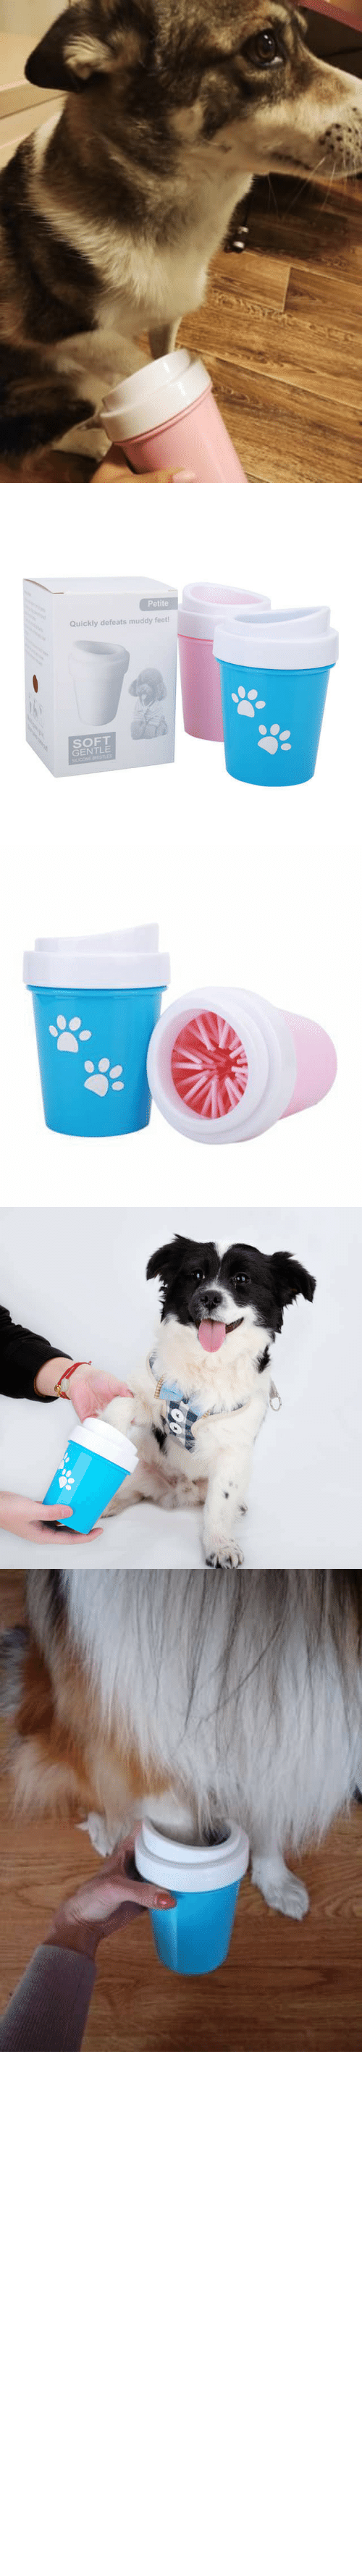 "Gathered: awesomage:   PAW CLEANER     Now your best friend can have all the muddy dirty fun he wants without bringing it all into your home or vehicle.    30% OFF plus Free Worldwide Shipping with coupon code ""CUDDLING""    All funds gathered will be donated for rescue dog shelters    SUPPORTS US NOW, ORDER AND SHARE OUR CAUSE!https://www.doggiemon.com/products/paw-cleaner"